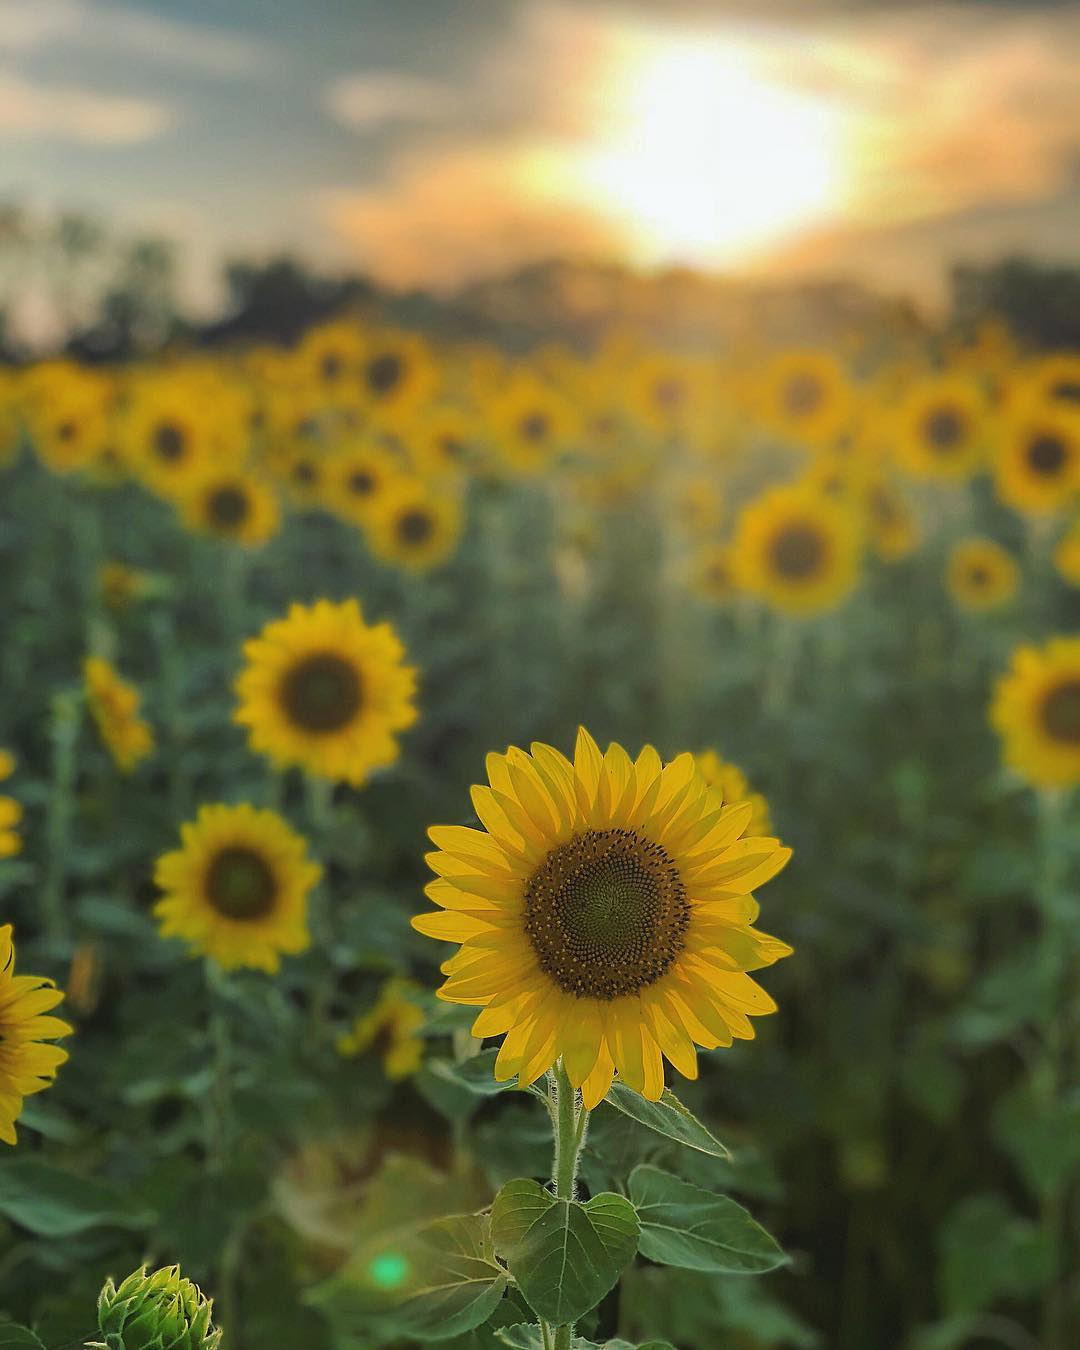 Every year, a large field of gorgeous, golden sunflowers blooms across from Cottell Park. During the summer months, the field is the perfect place to take photos for Instagram. If you want to visit the sunflowers yourself, they're located directly across Snider Road from Cottell Park. ADDRESS: 5847 Irwin Simpson Rd (45040) / Image courtesy of Instagram user @becs_photography3 // Published: 8.3.18